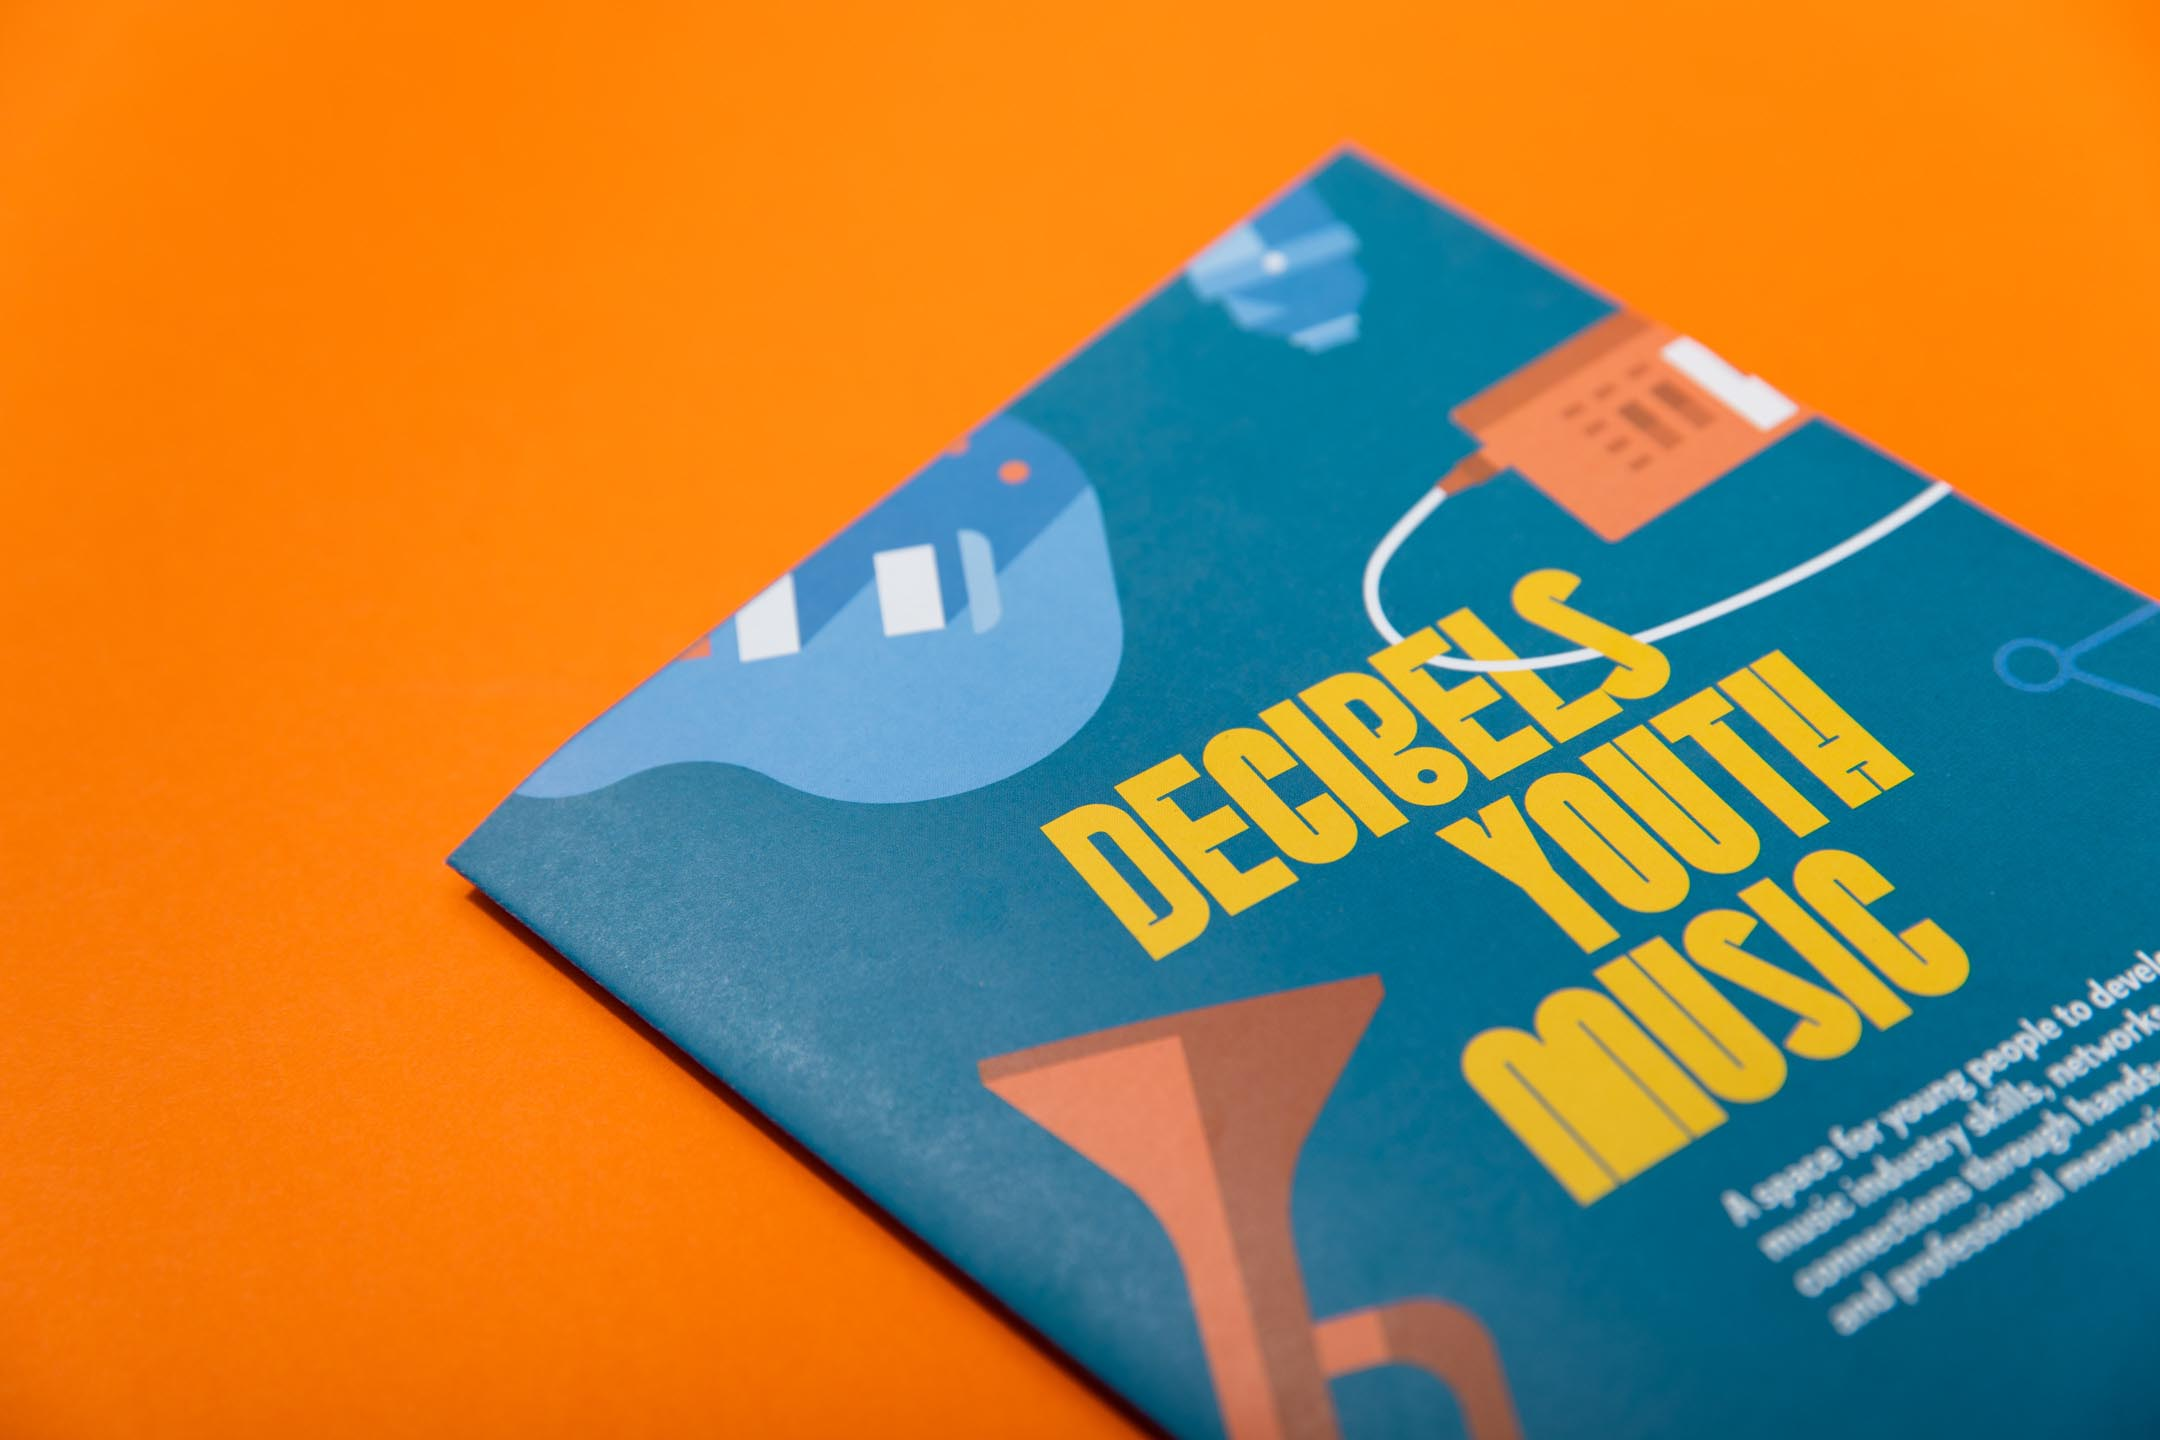 public-journal-decibels-youth-music-4